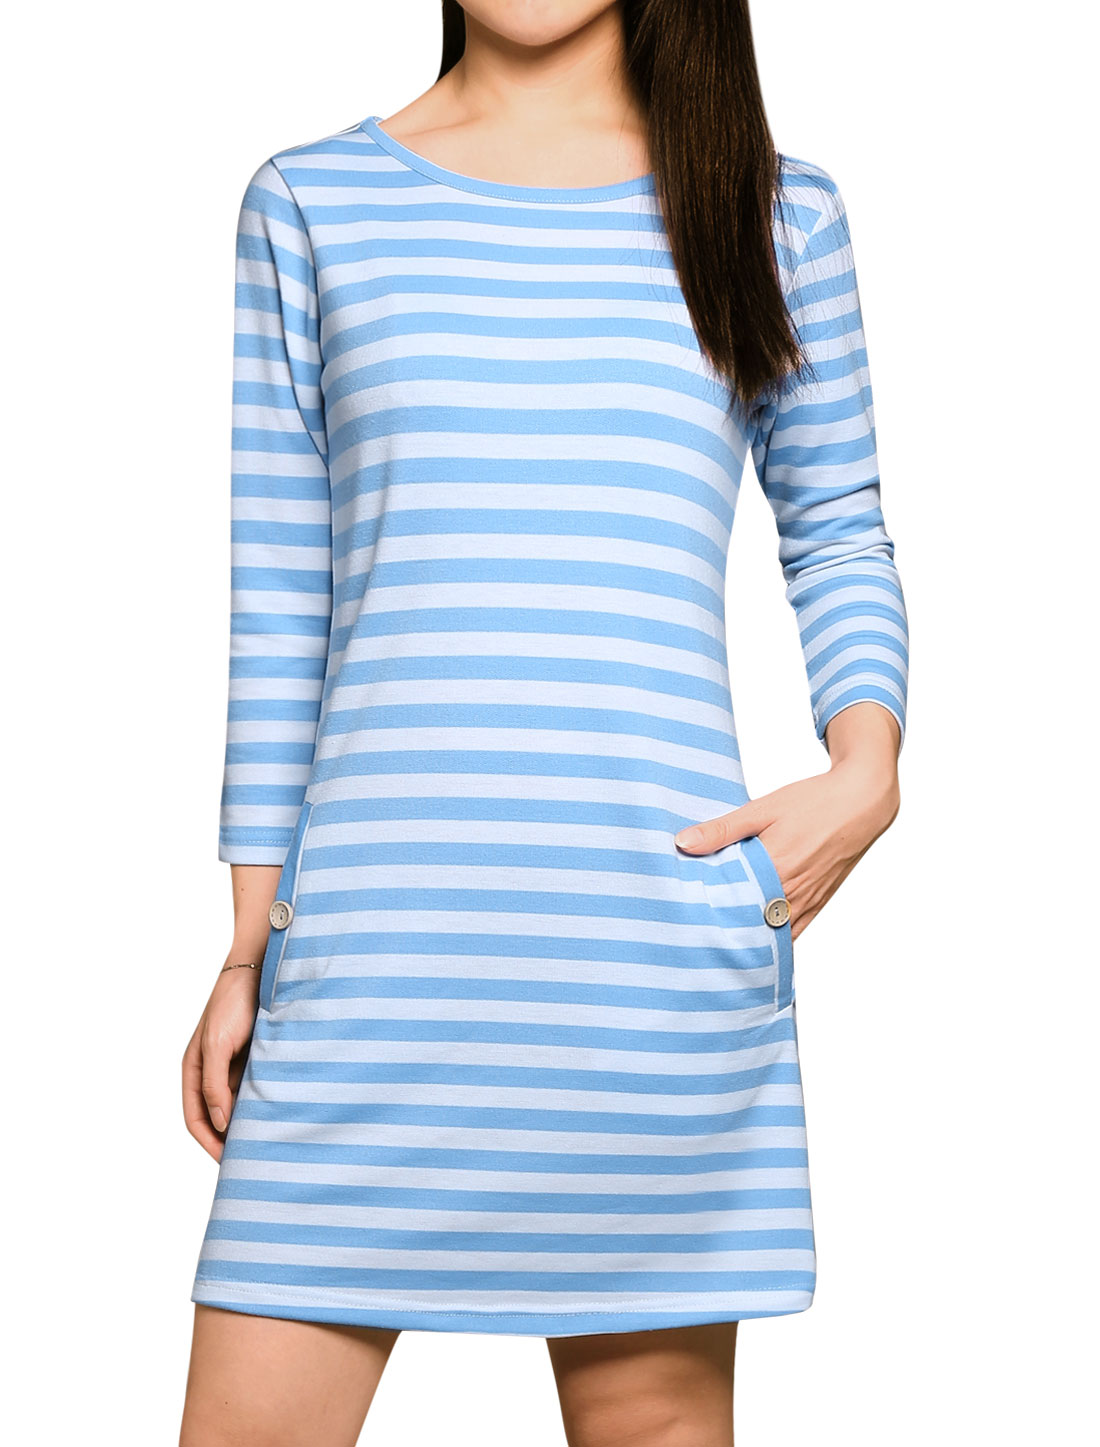 Ladies Horizontal Stripes 3/4 Sleeves Scoop Neck Mini Dress Blue L